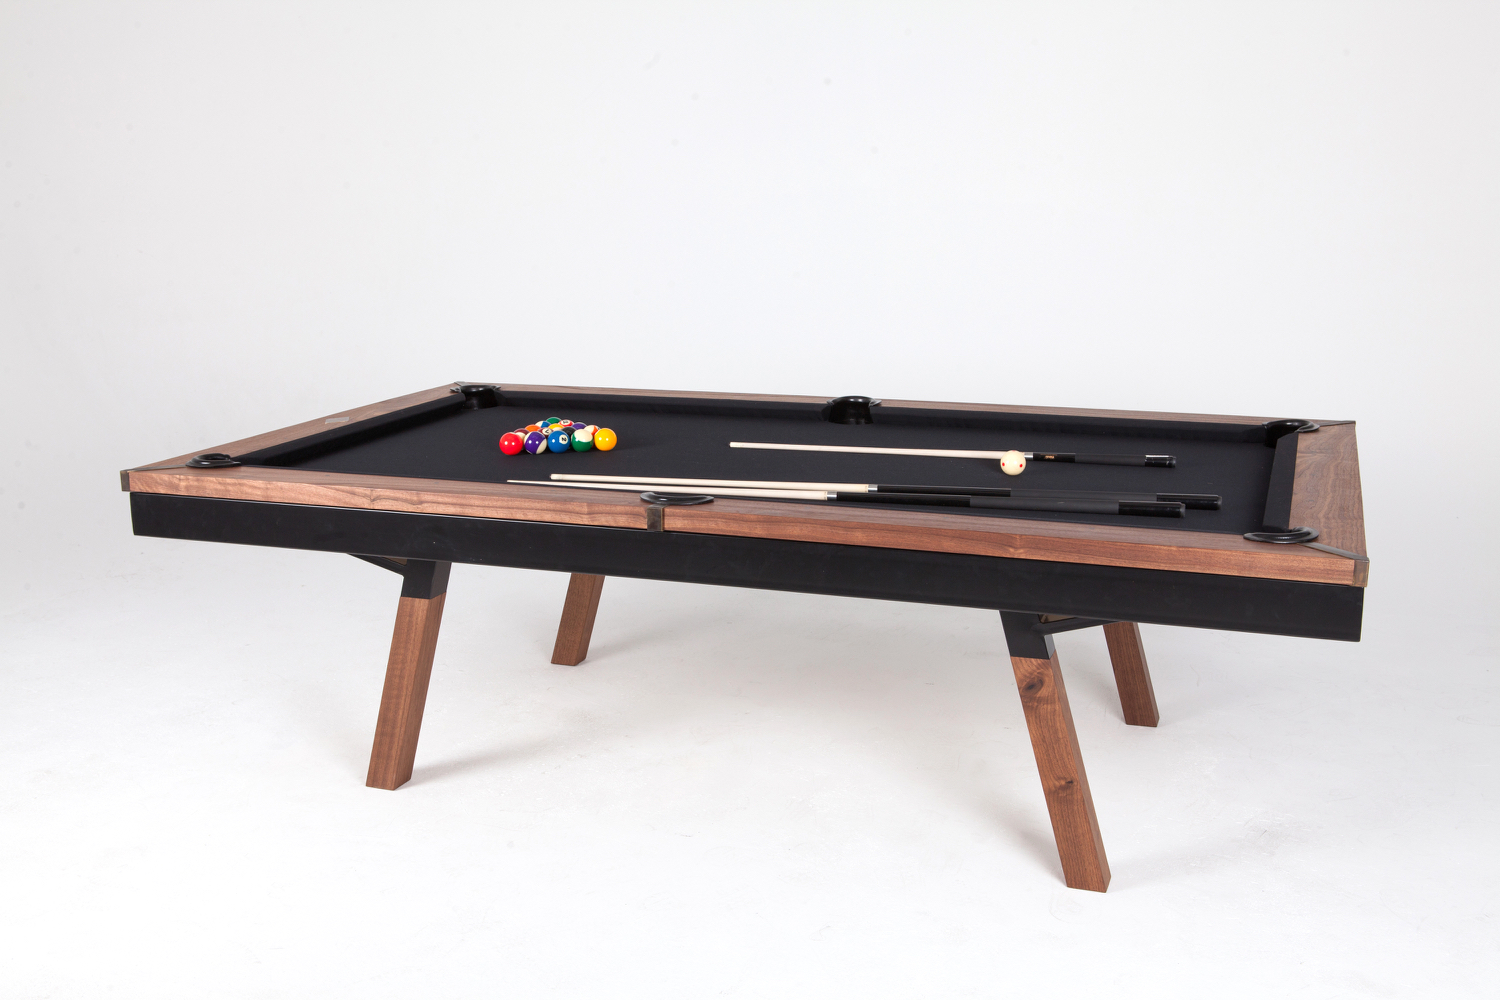 POOLTABLE-WEB - 12.jpg